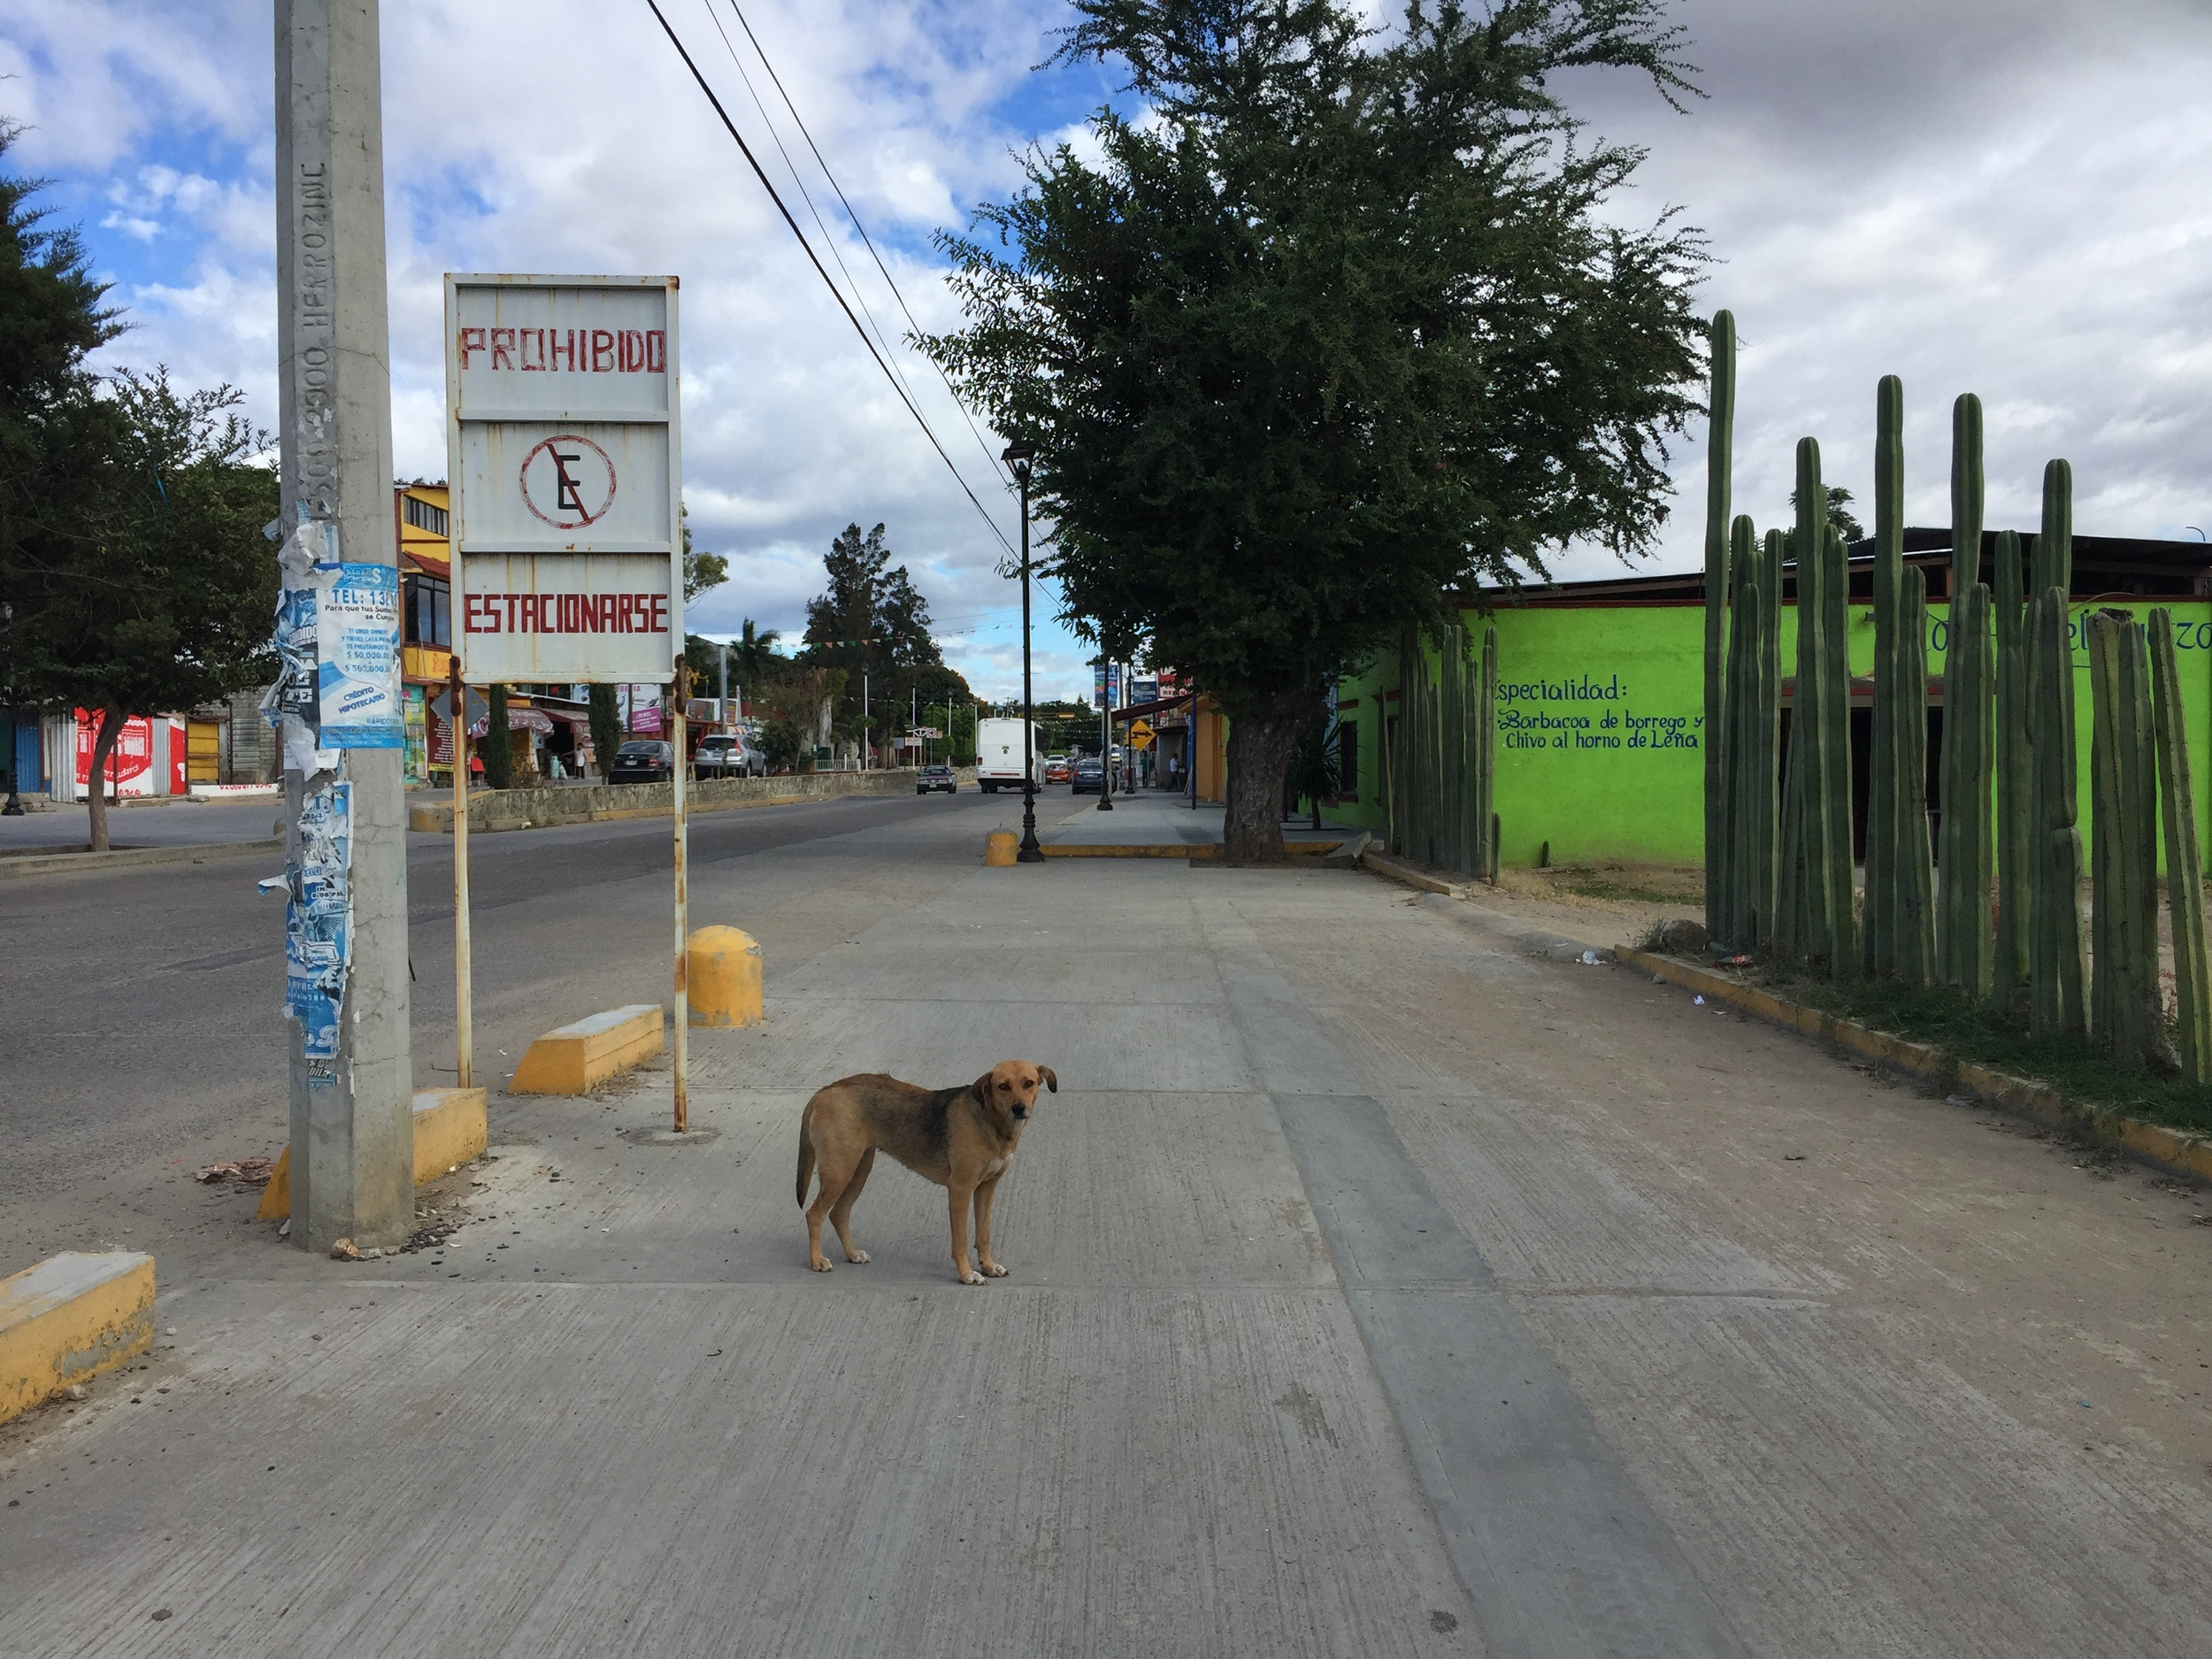 Typical street view. Lots of stray dogs.